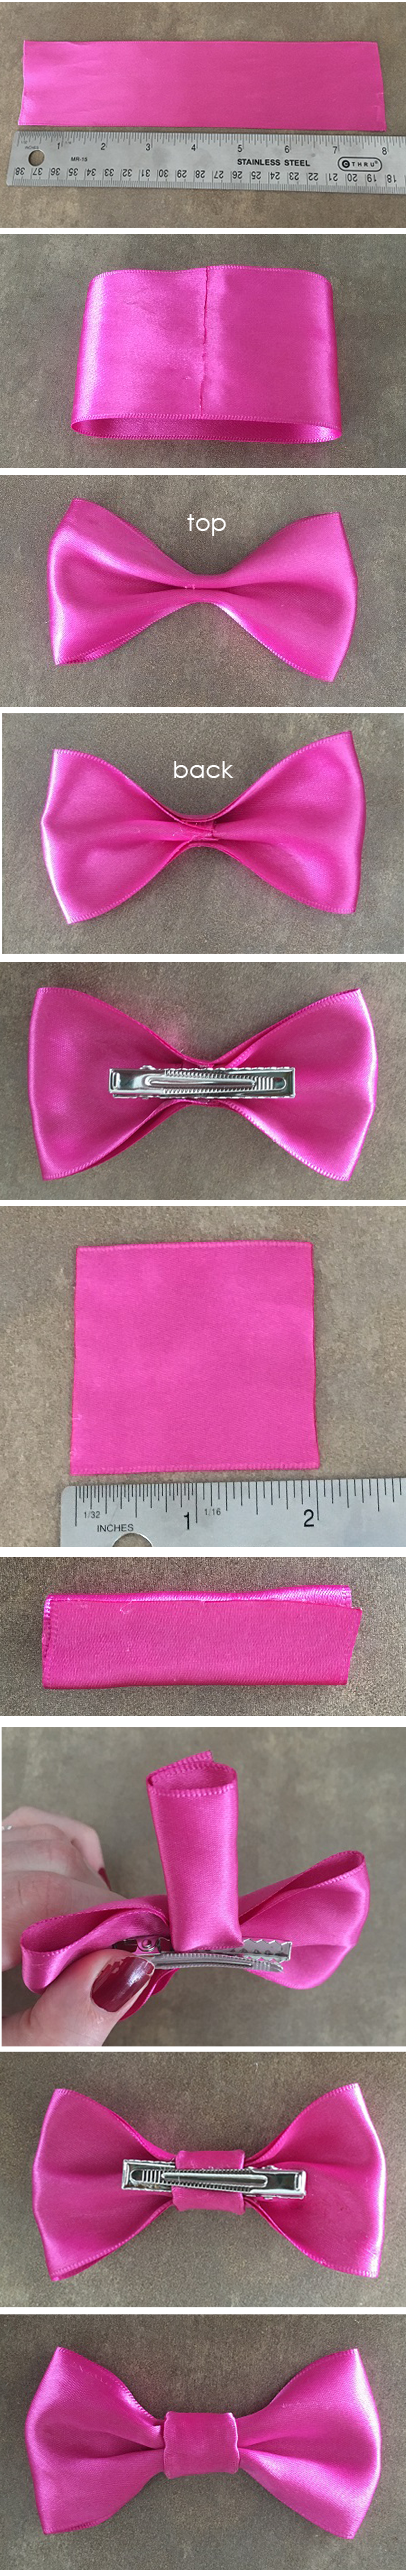 no sew bow hair clip step by step